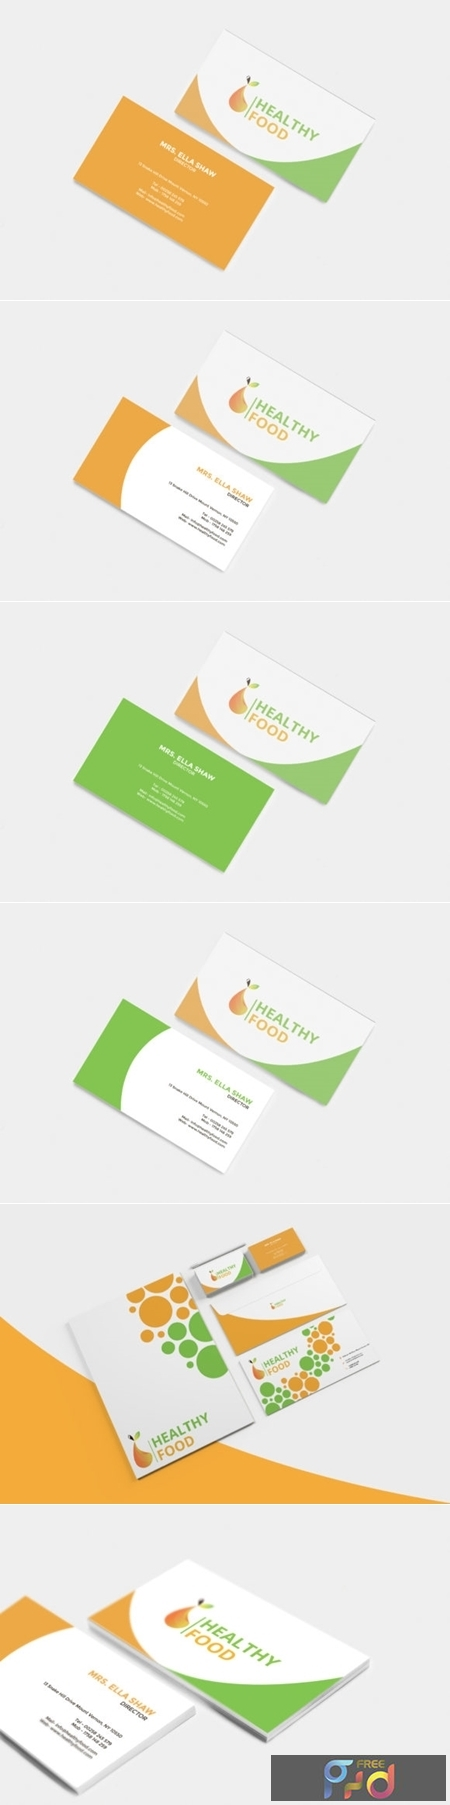 Healthy Food Business Card 1663563 1